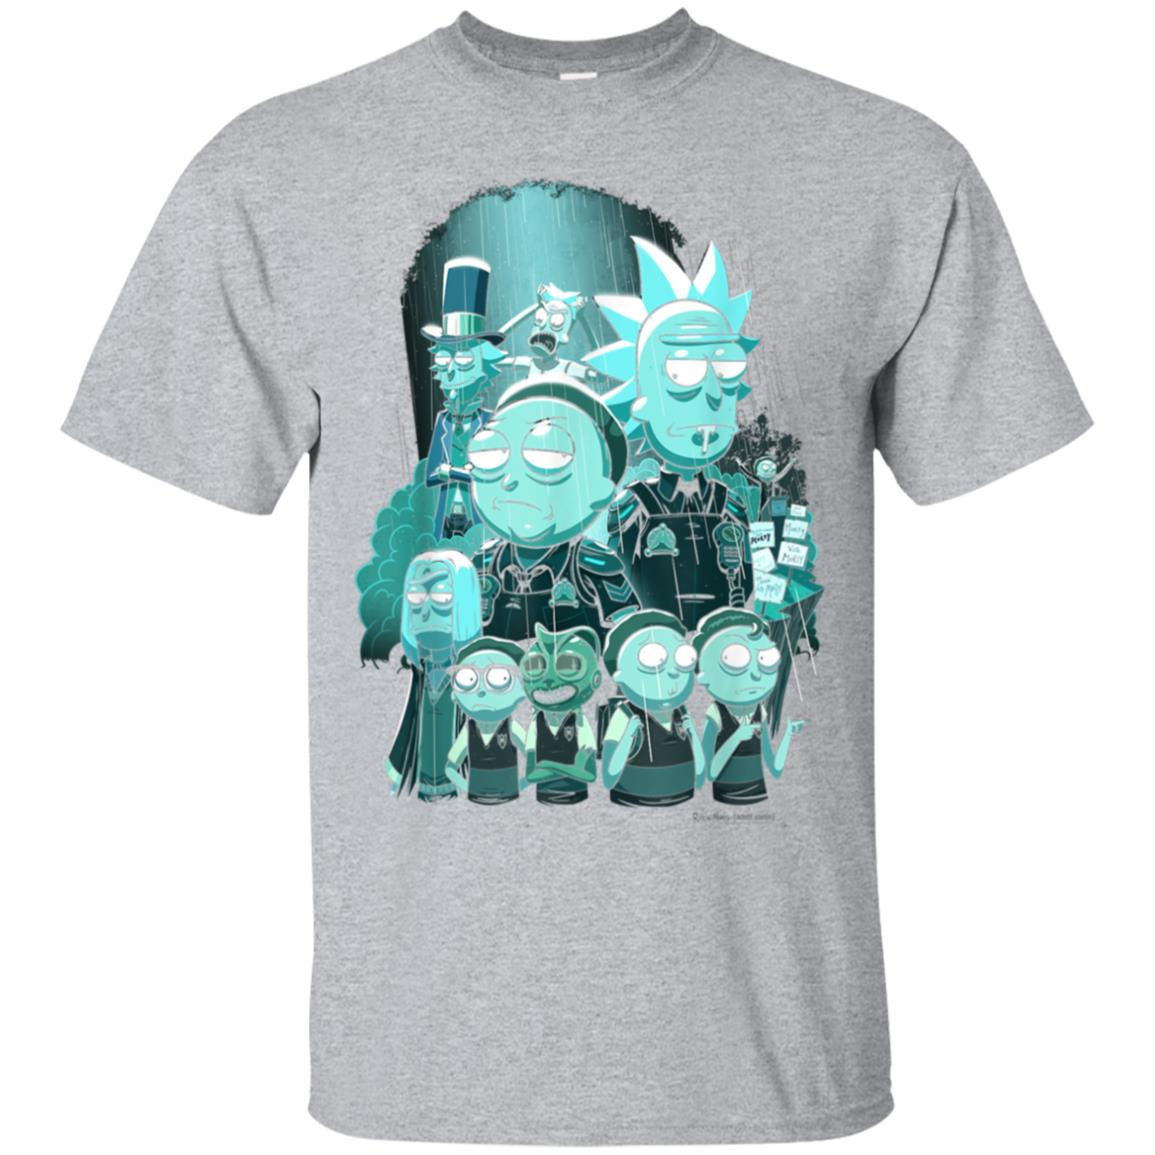 Rick and Morty - Tales From The Citadel 99promocode